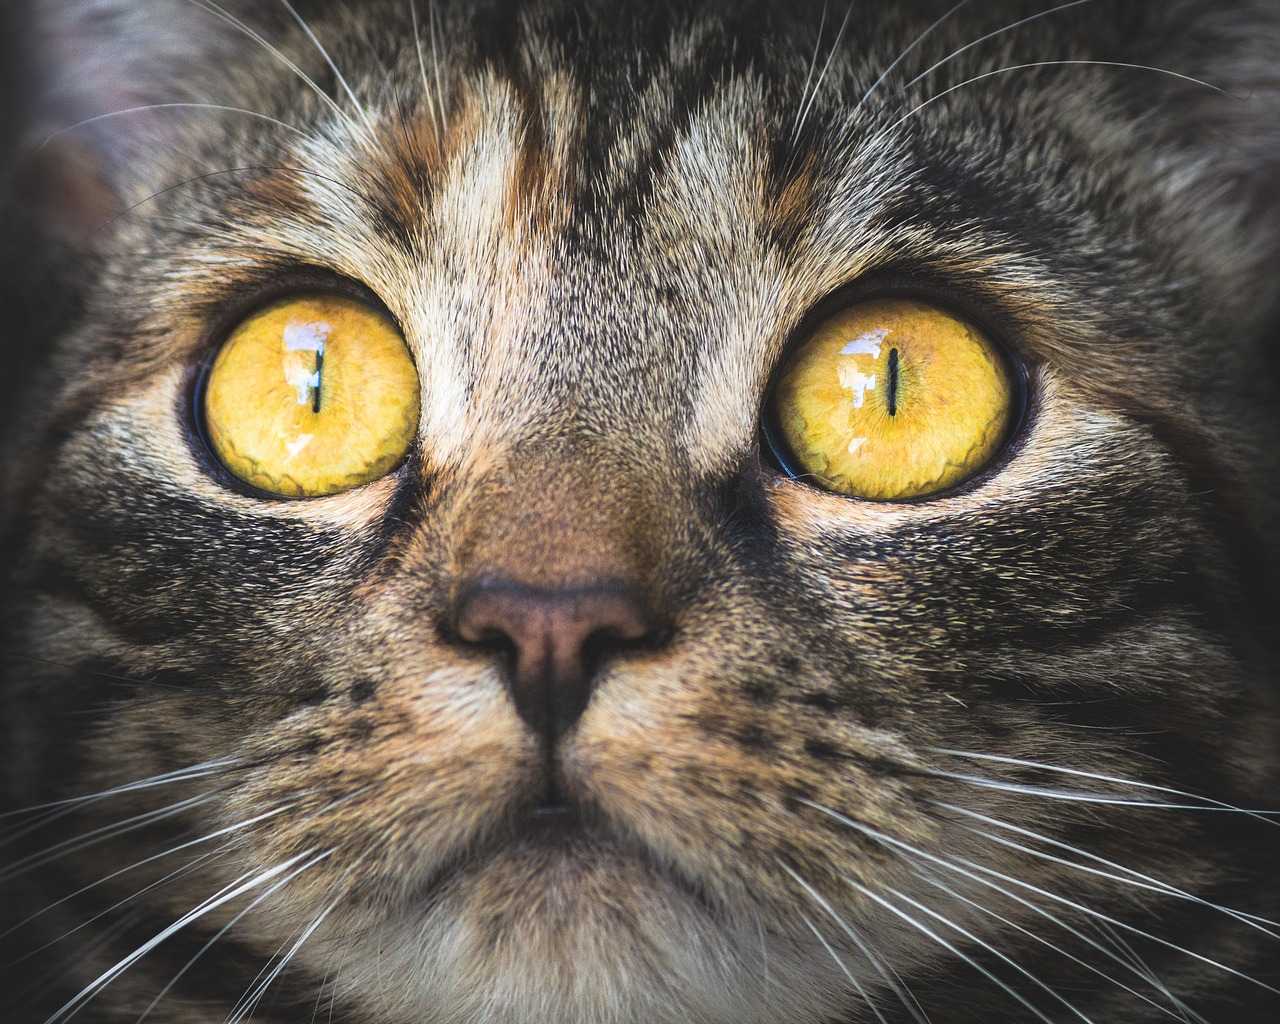 House cat with large yellow eyes looking up. Gorilla Meme